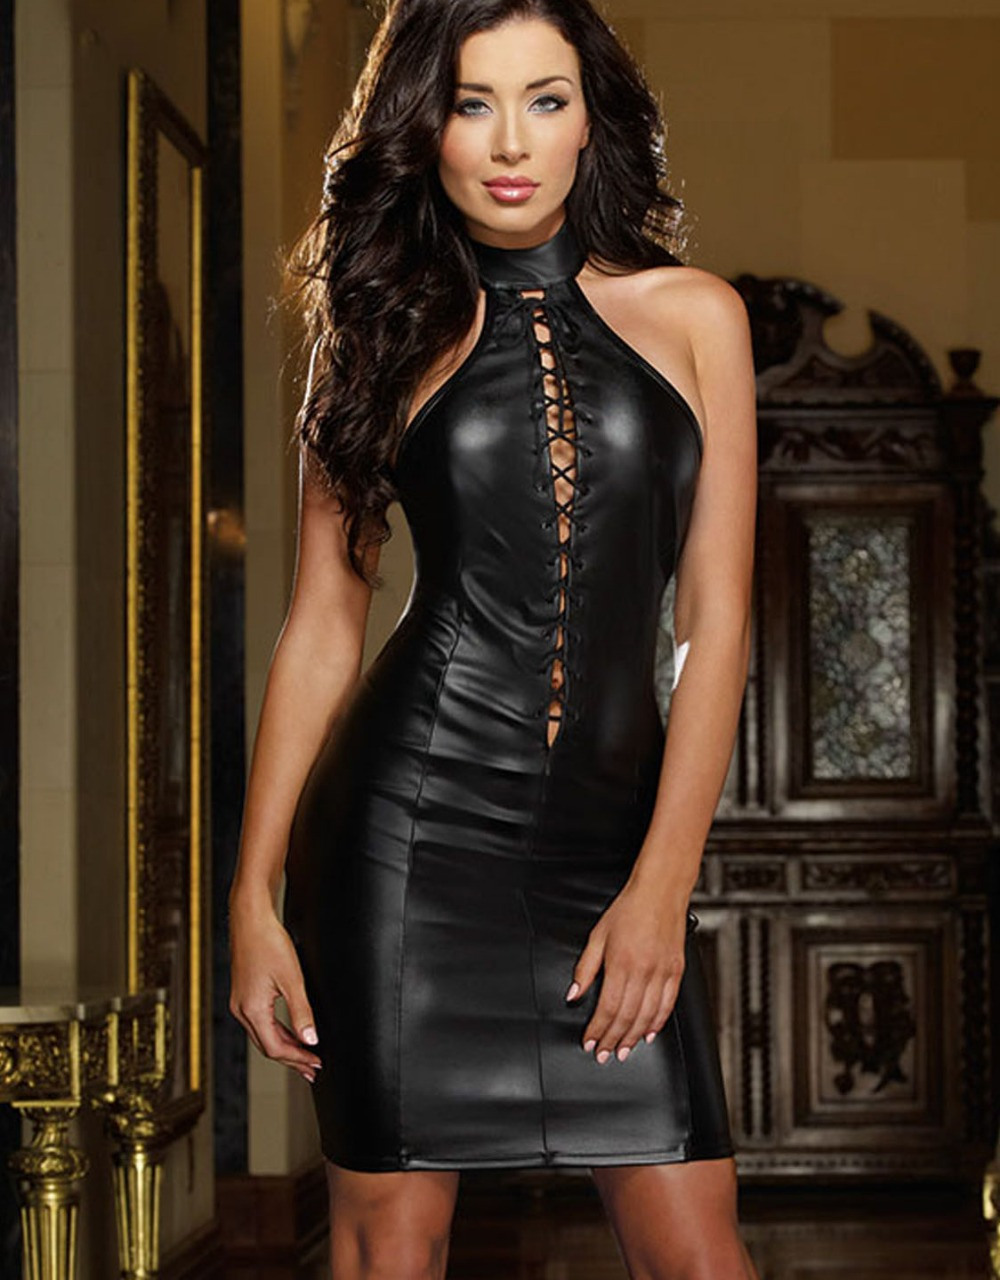 Hot Girls In Black Leather